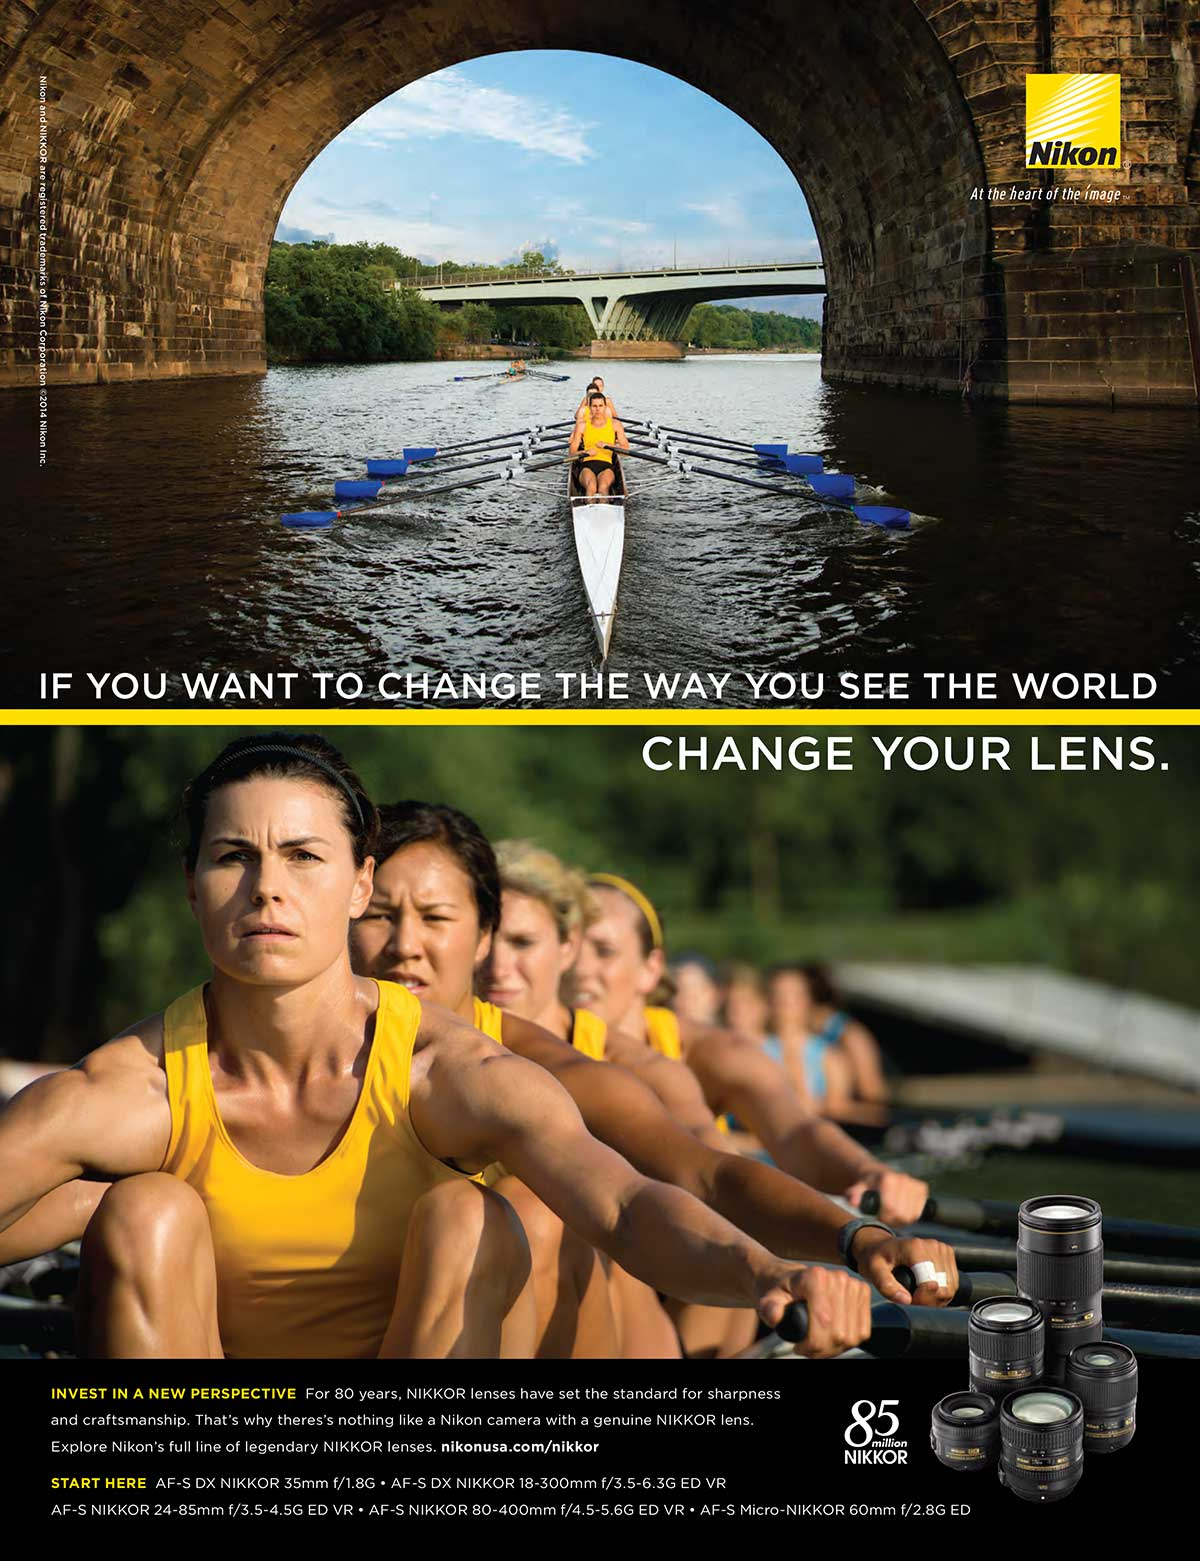 If you want to change the way you see the world, change your lens.